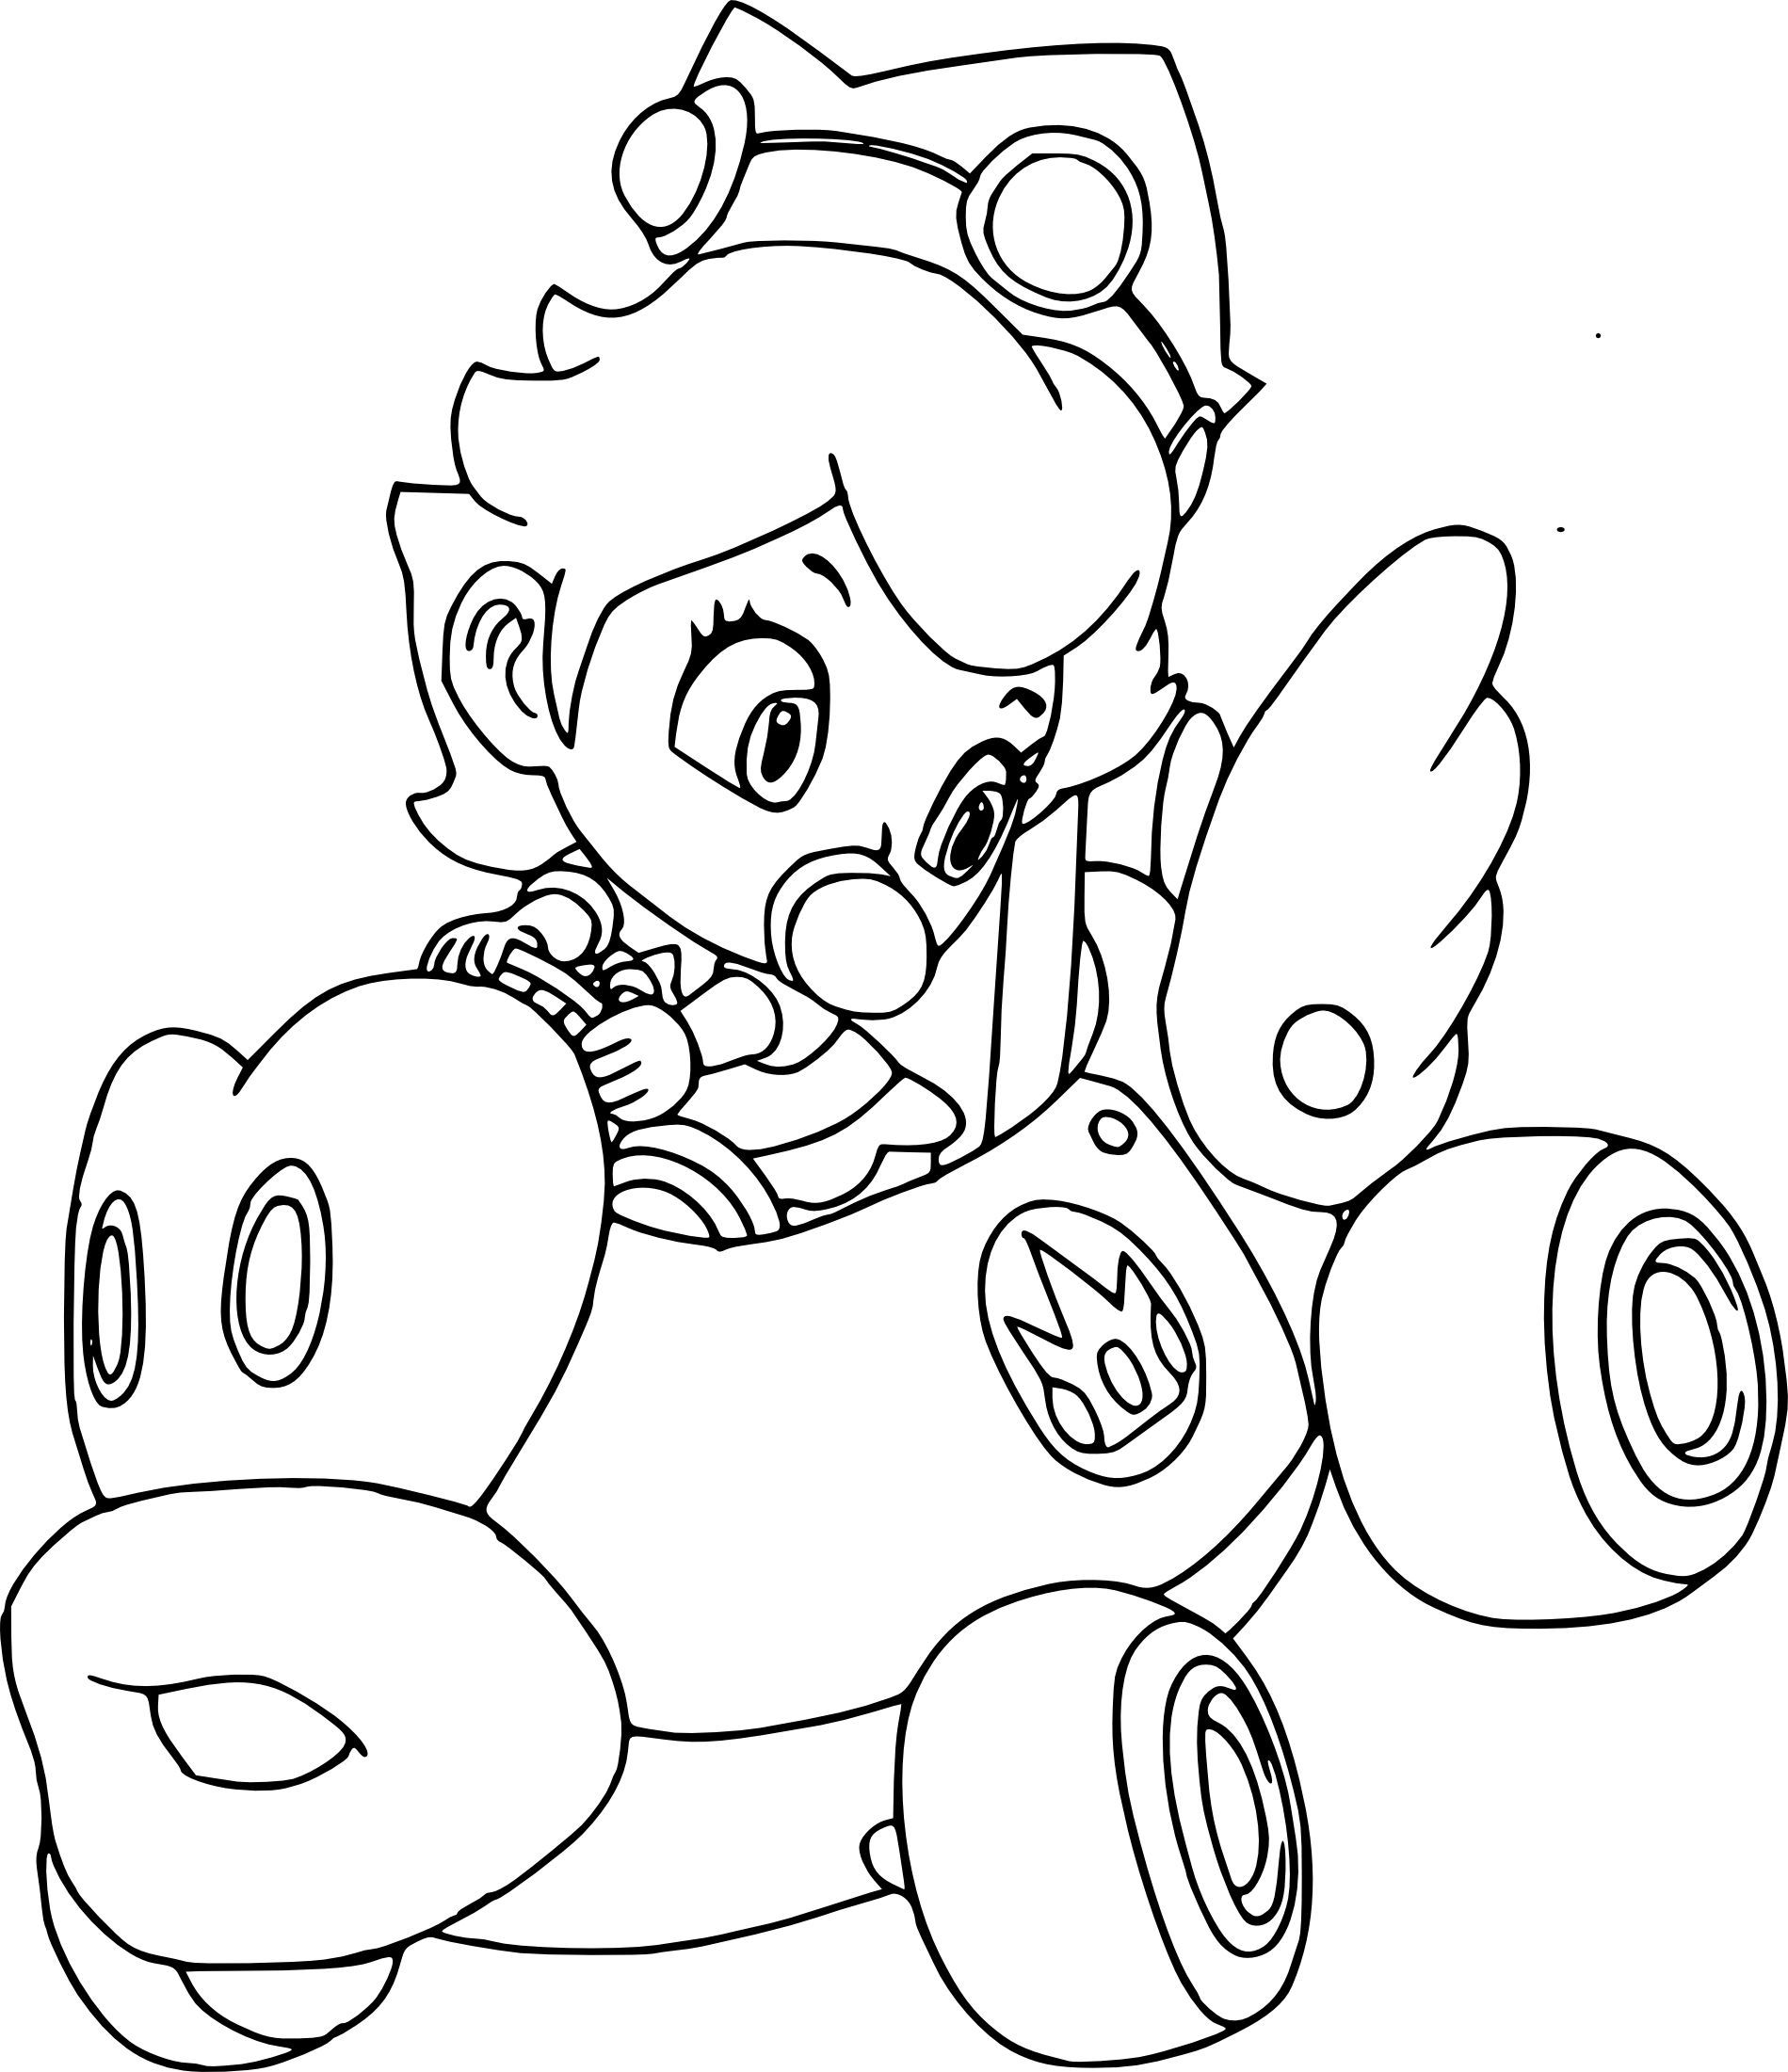 Mario Kart Wii Characters Coloring Pages Coloring Pages Free Coloring Pages Peach Mario Kart